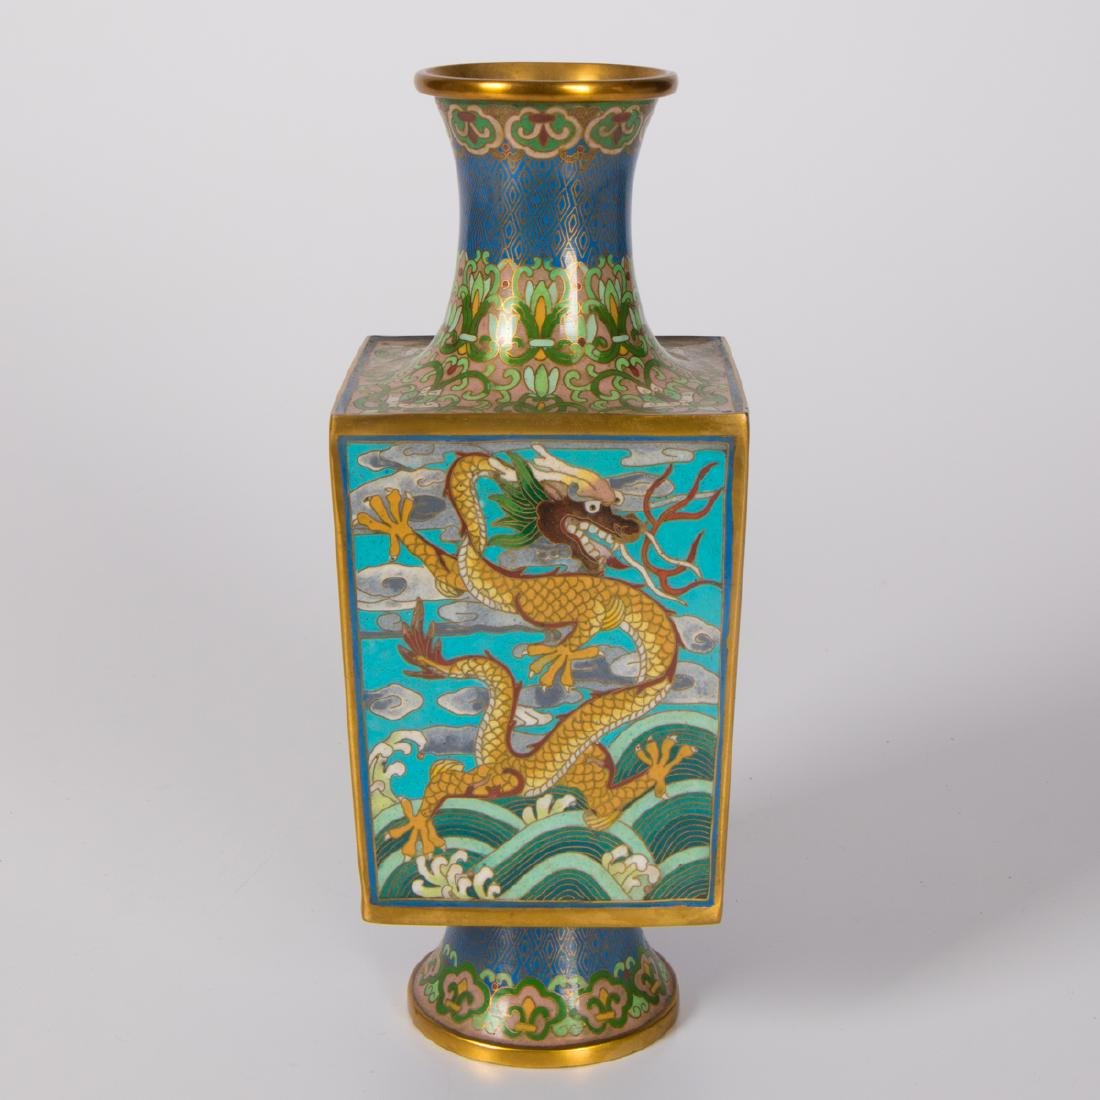 A Chinese Cloisonné Vase, 20th Century.